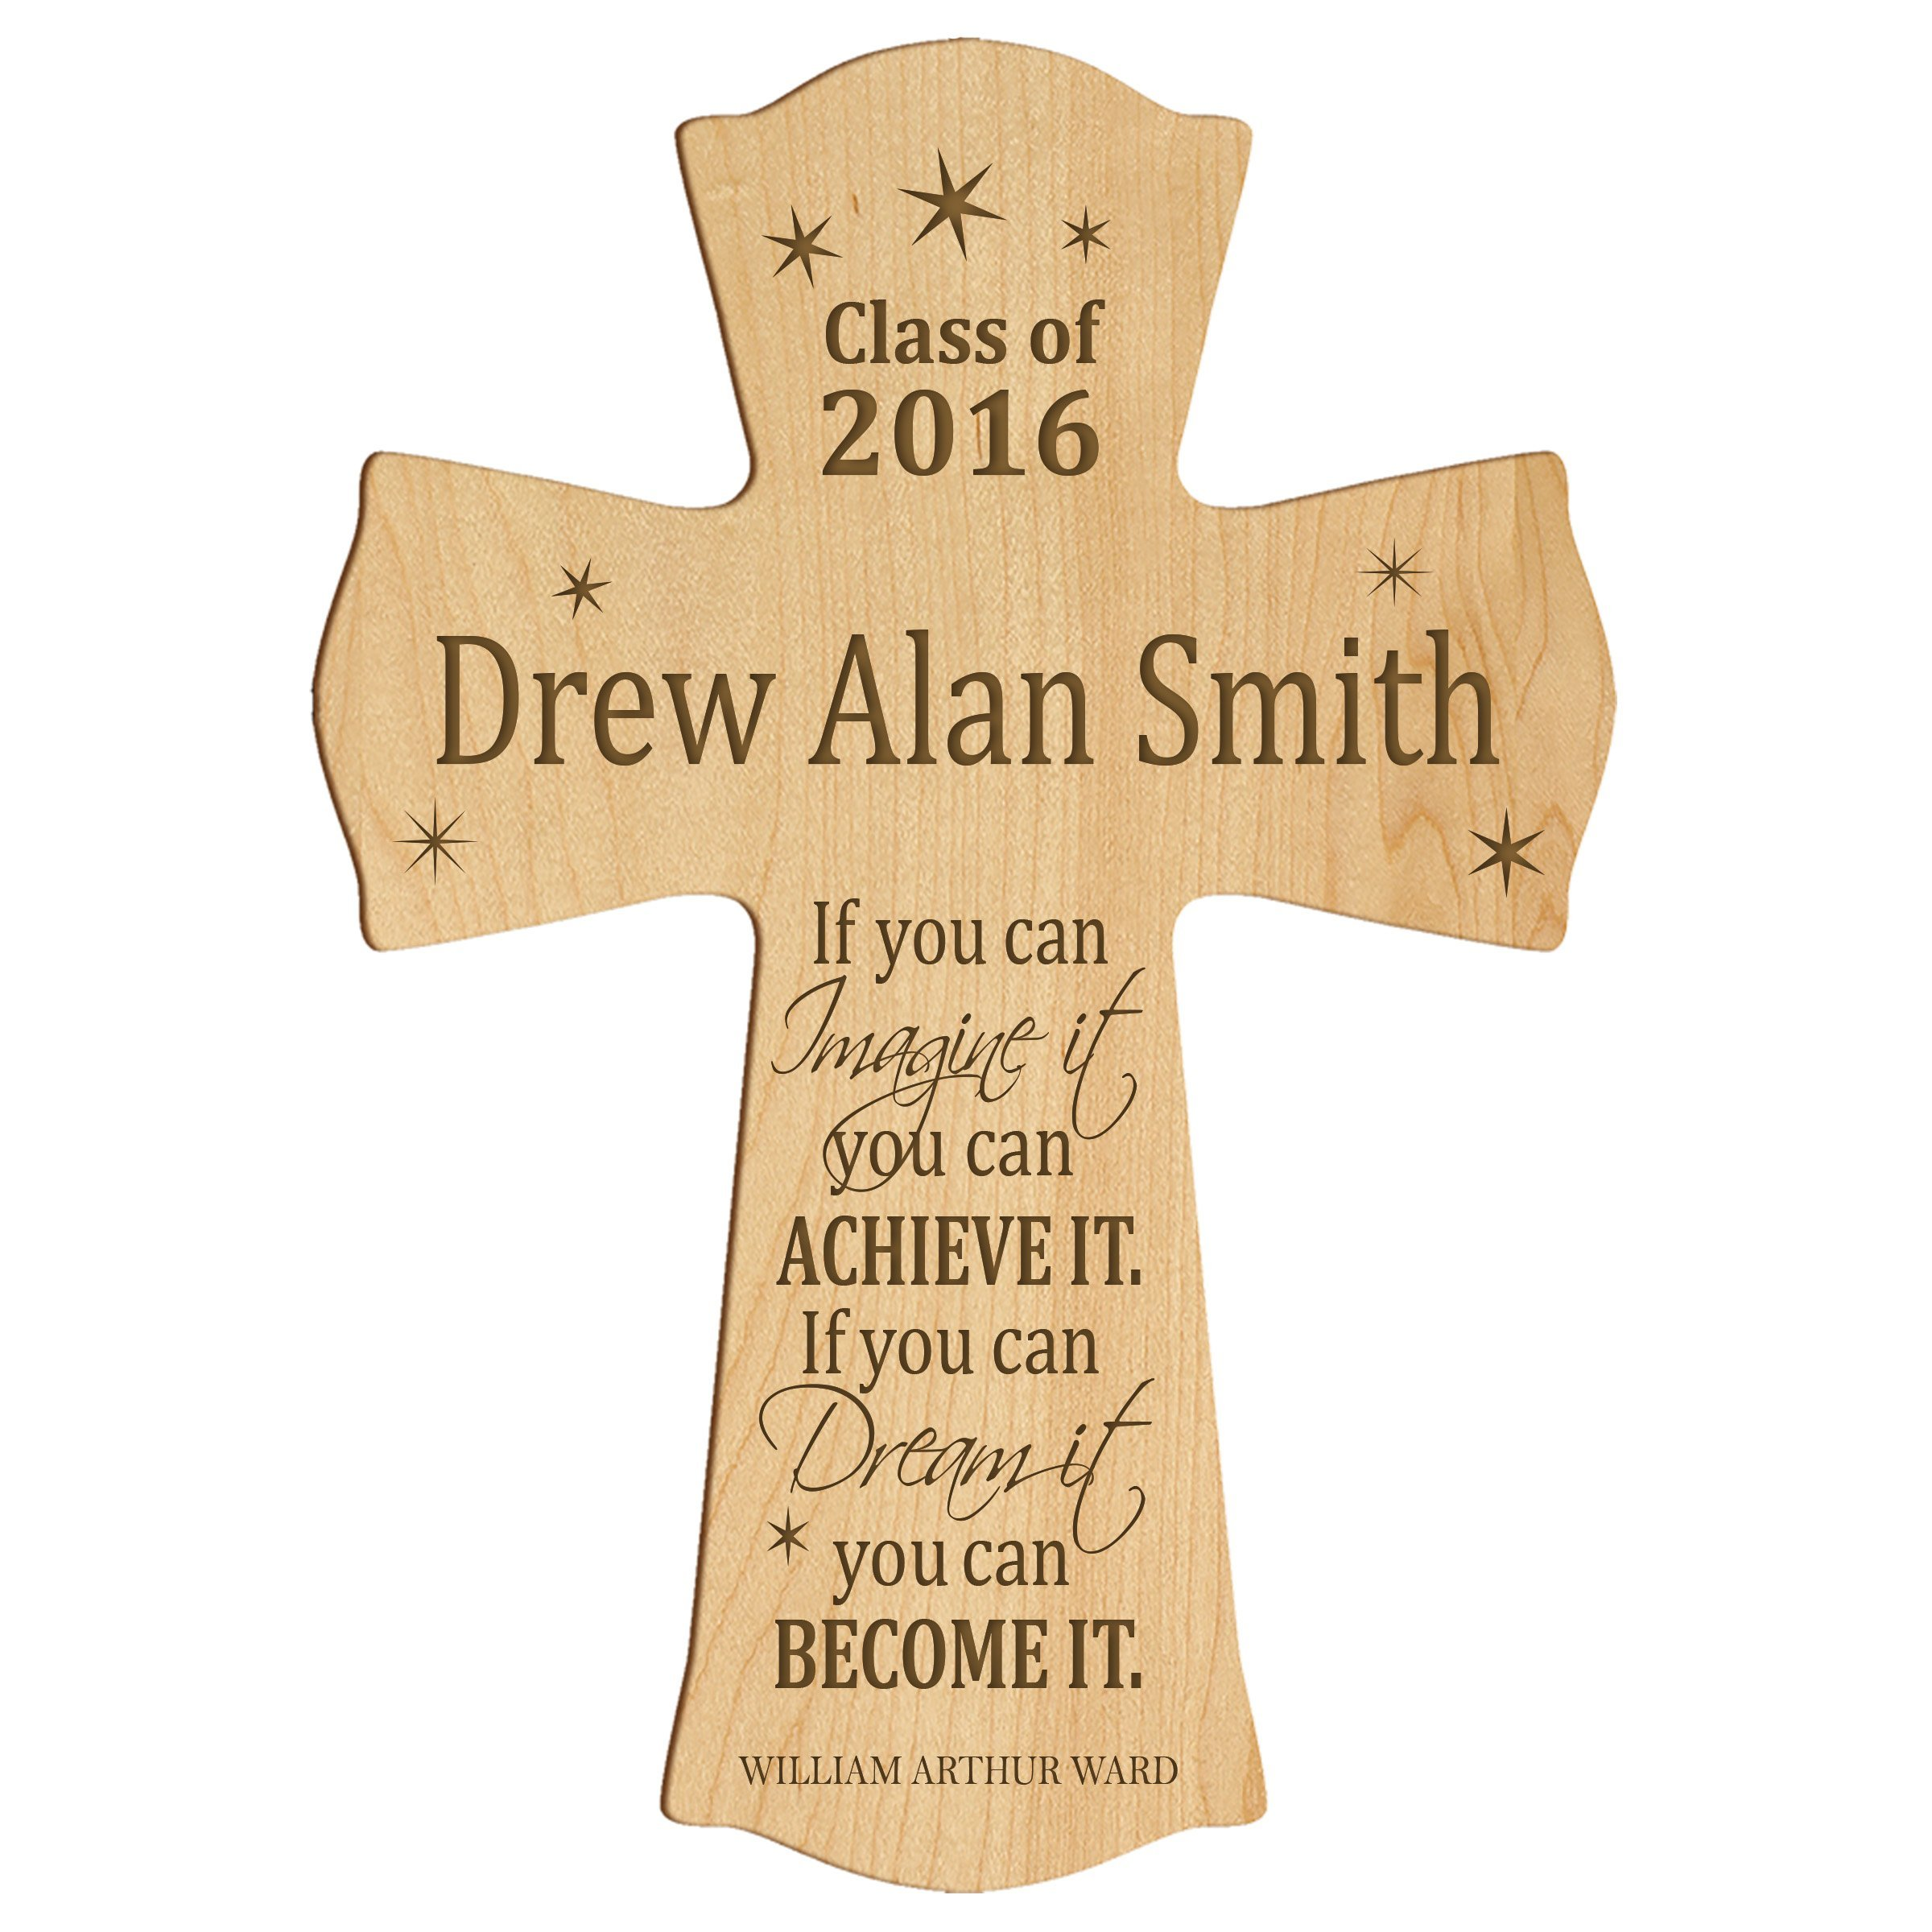 LifeSong Milestones Personalized Wall Cross Graduation gifts If you can IMAGINE it you can ACHIEVE IT if you can Dream it you can BECOME IT (8.5'' x 11'', Maple)